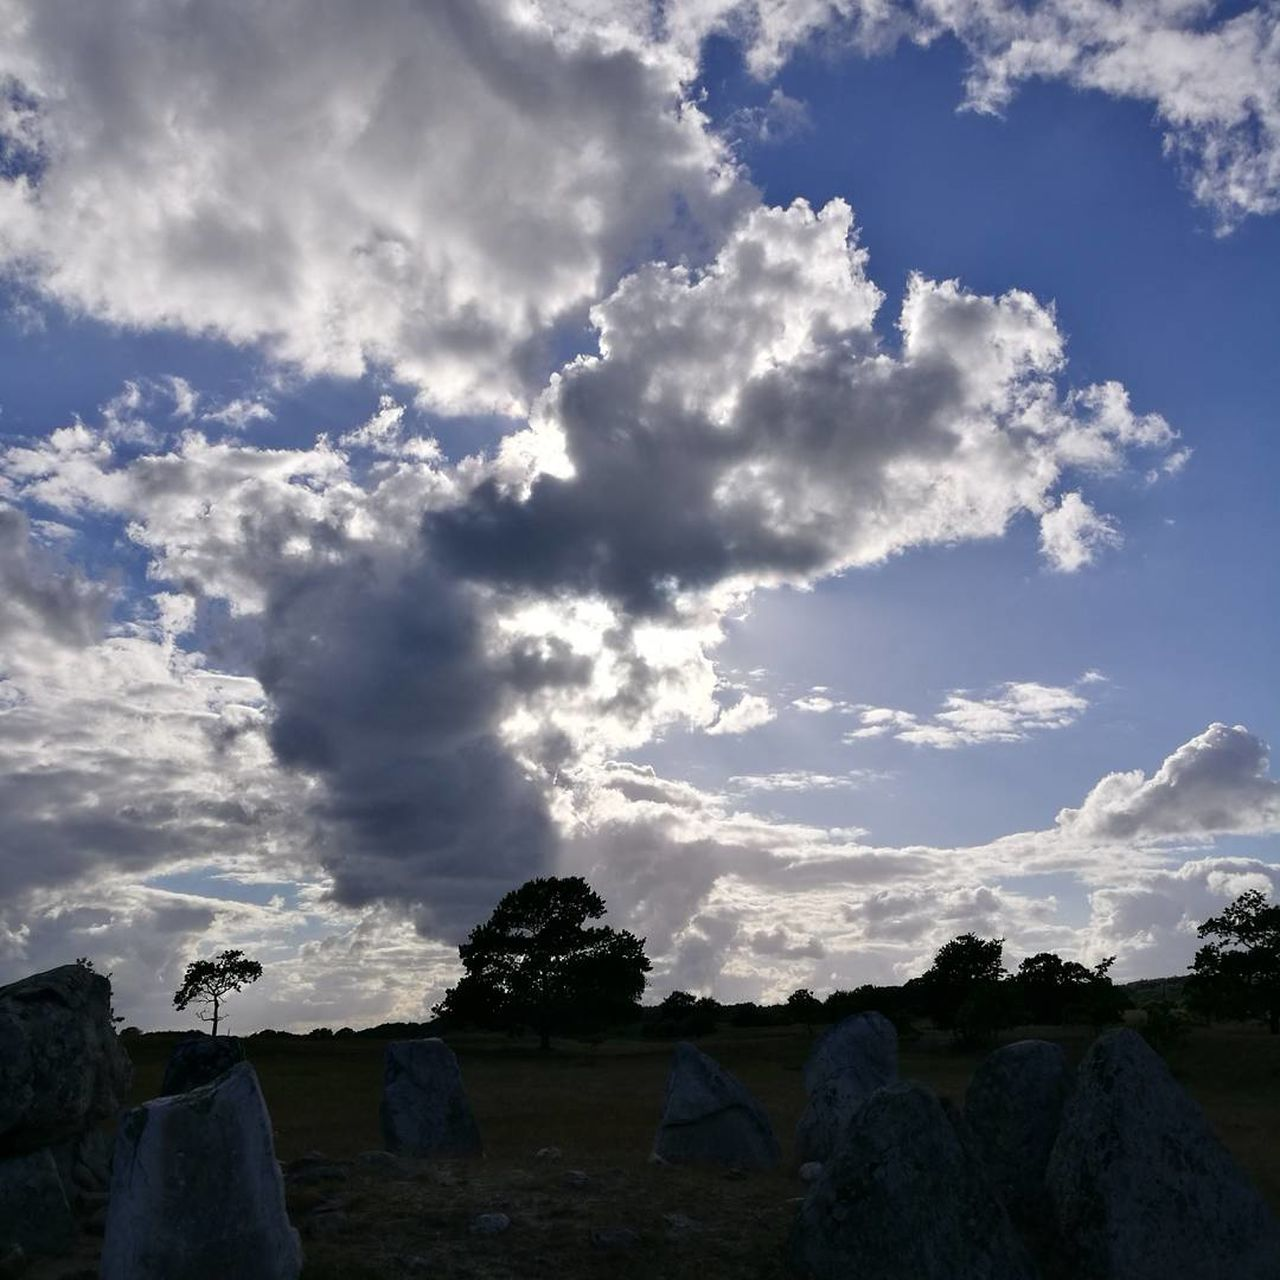 cloud - sky, sky, nature, beauty in nature, landscape, outdoors, day, tranquility, no people, scenics, tree, animal themes